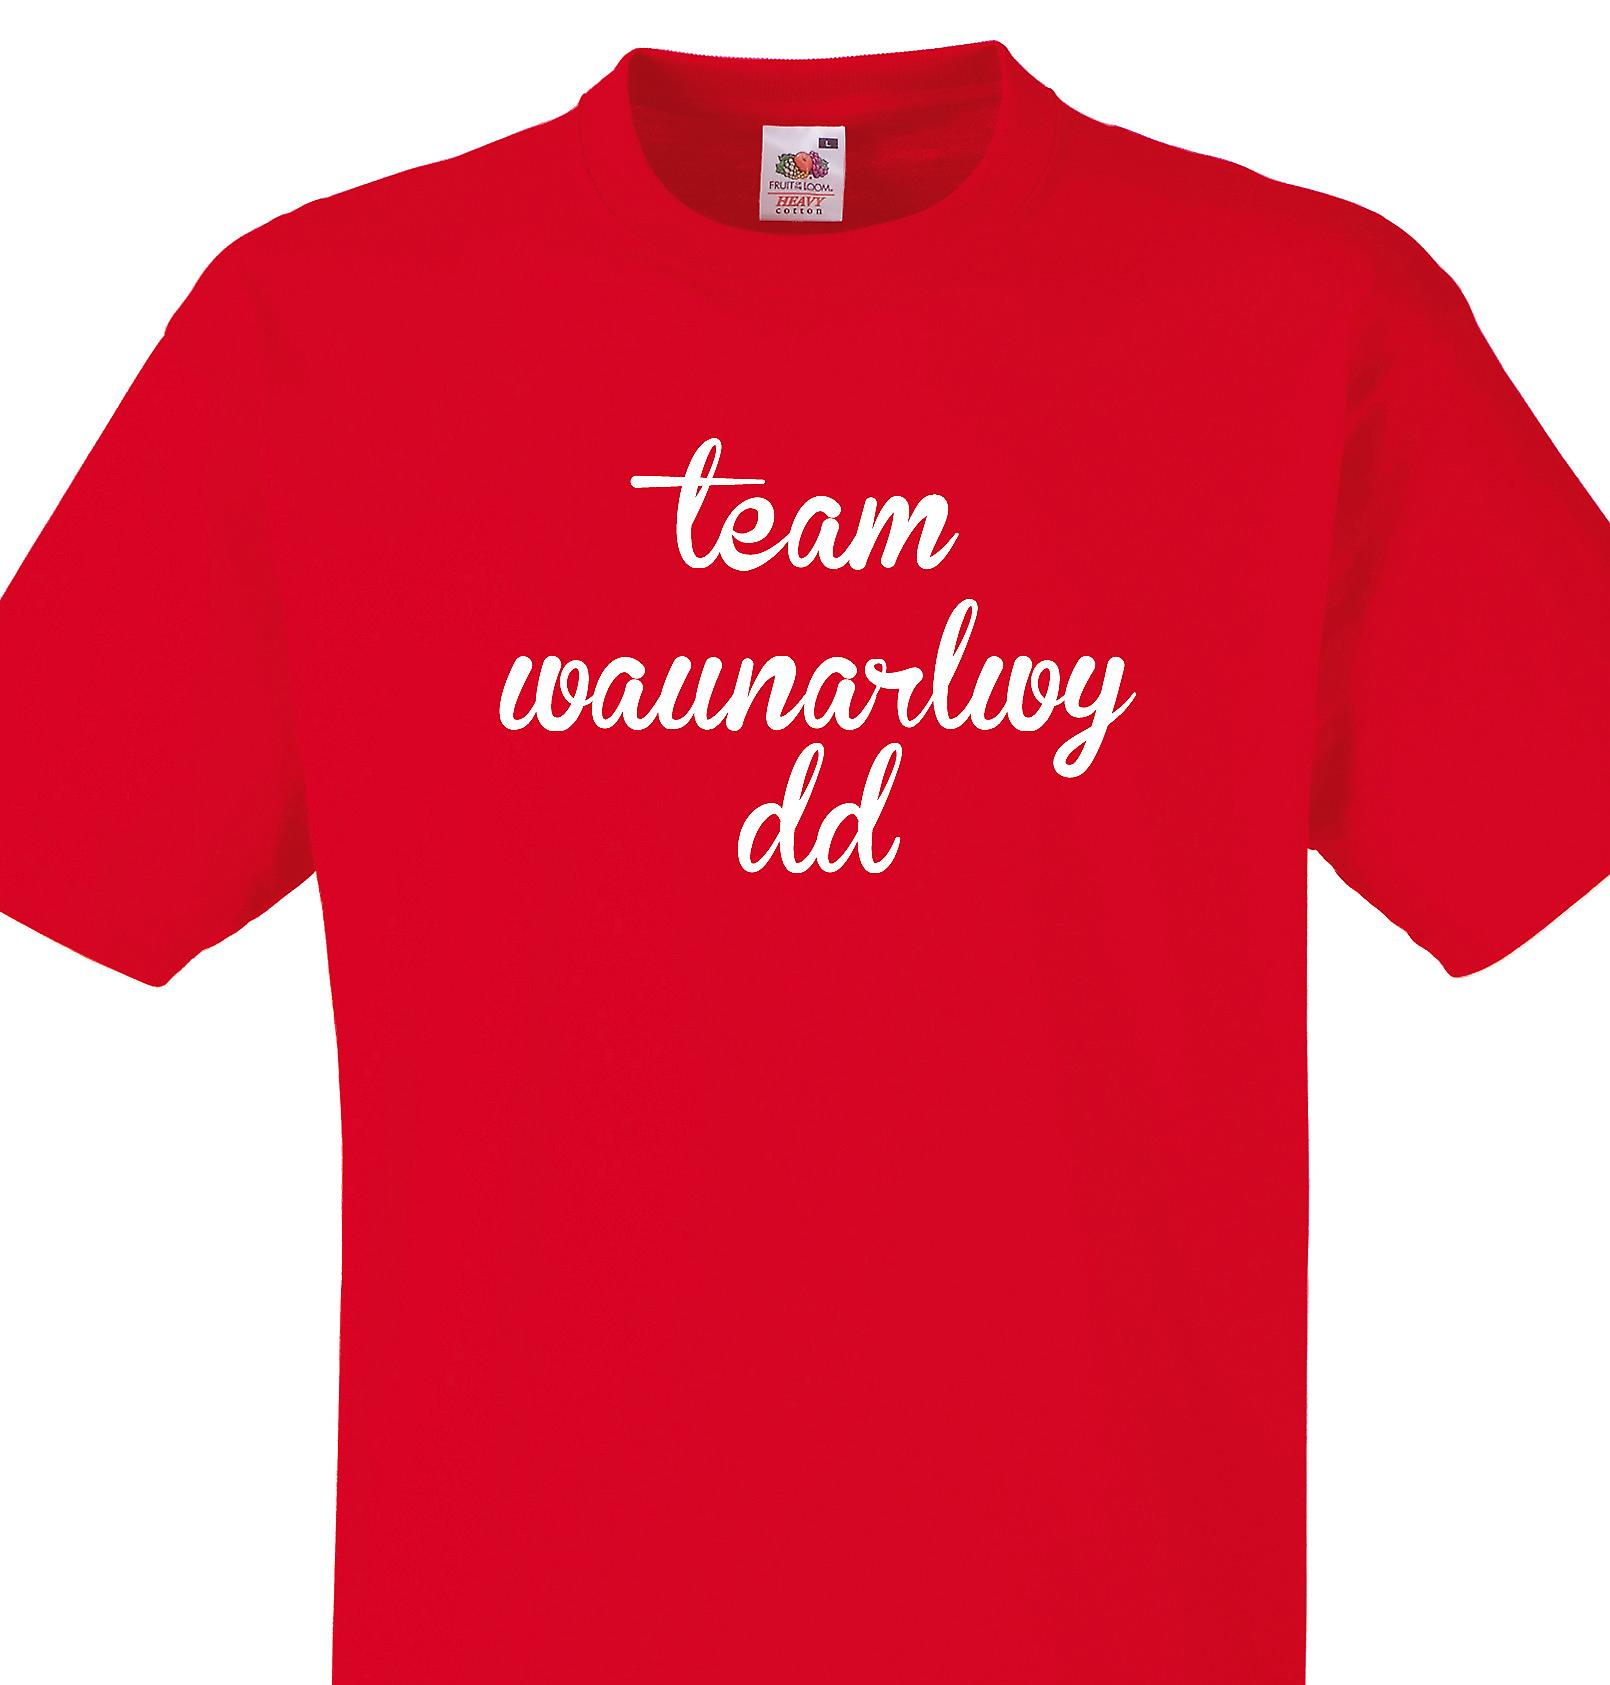 Team Waunarlwydd Red T shirt